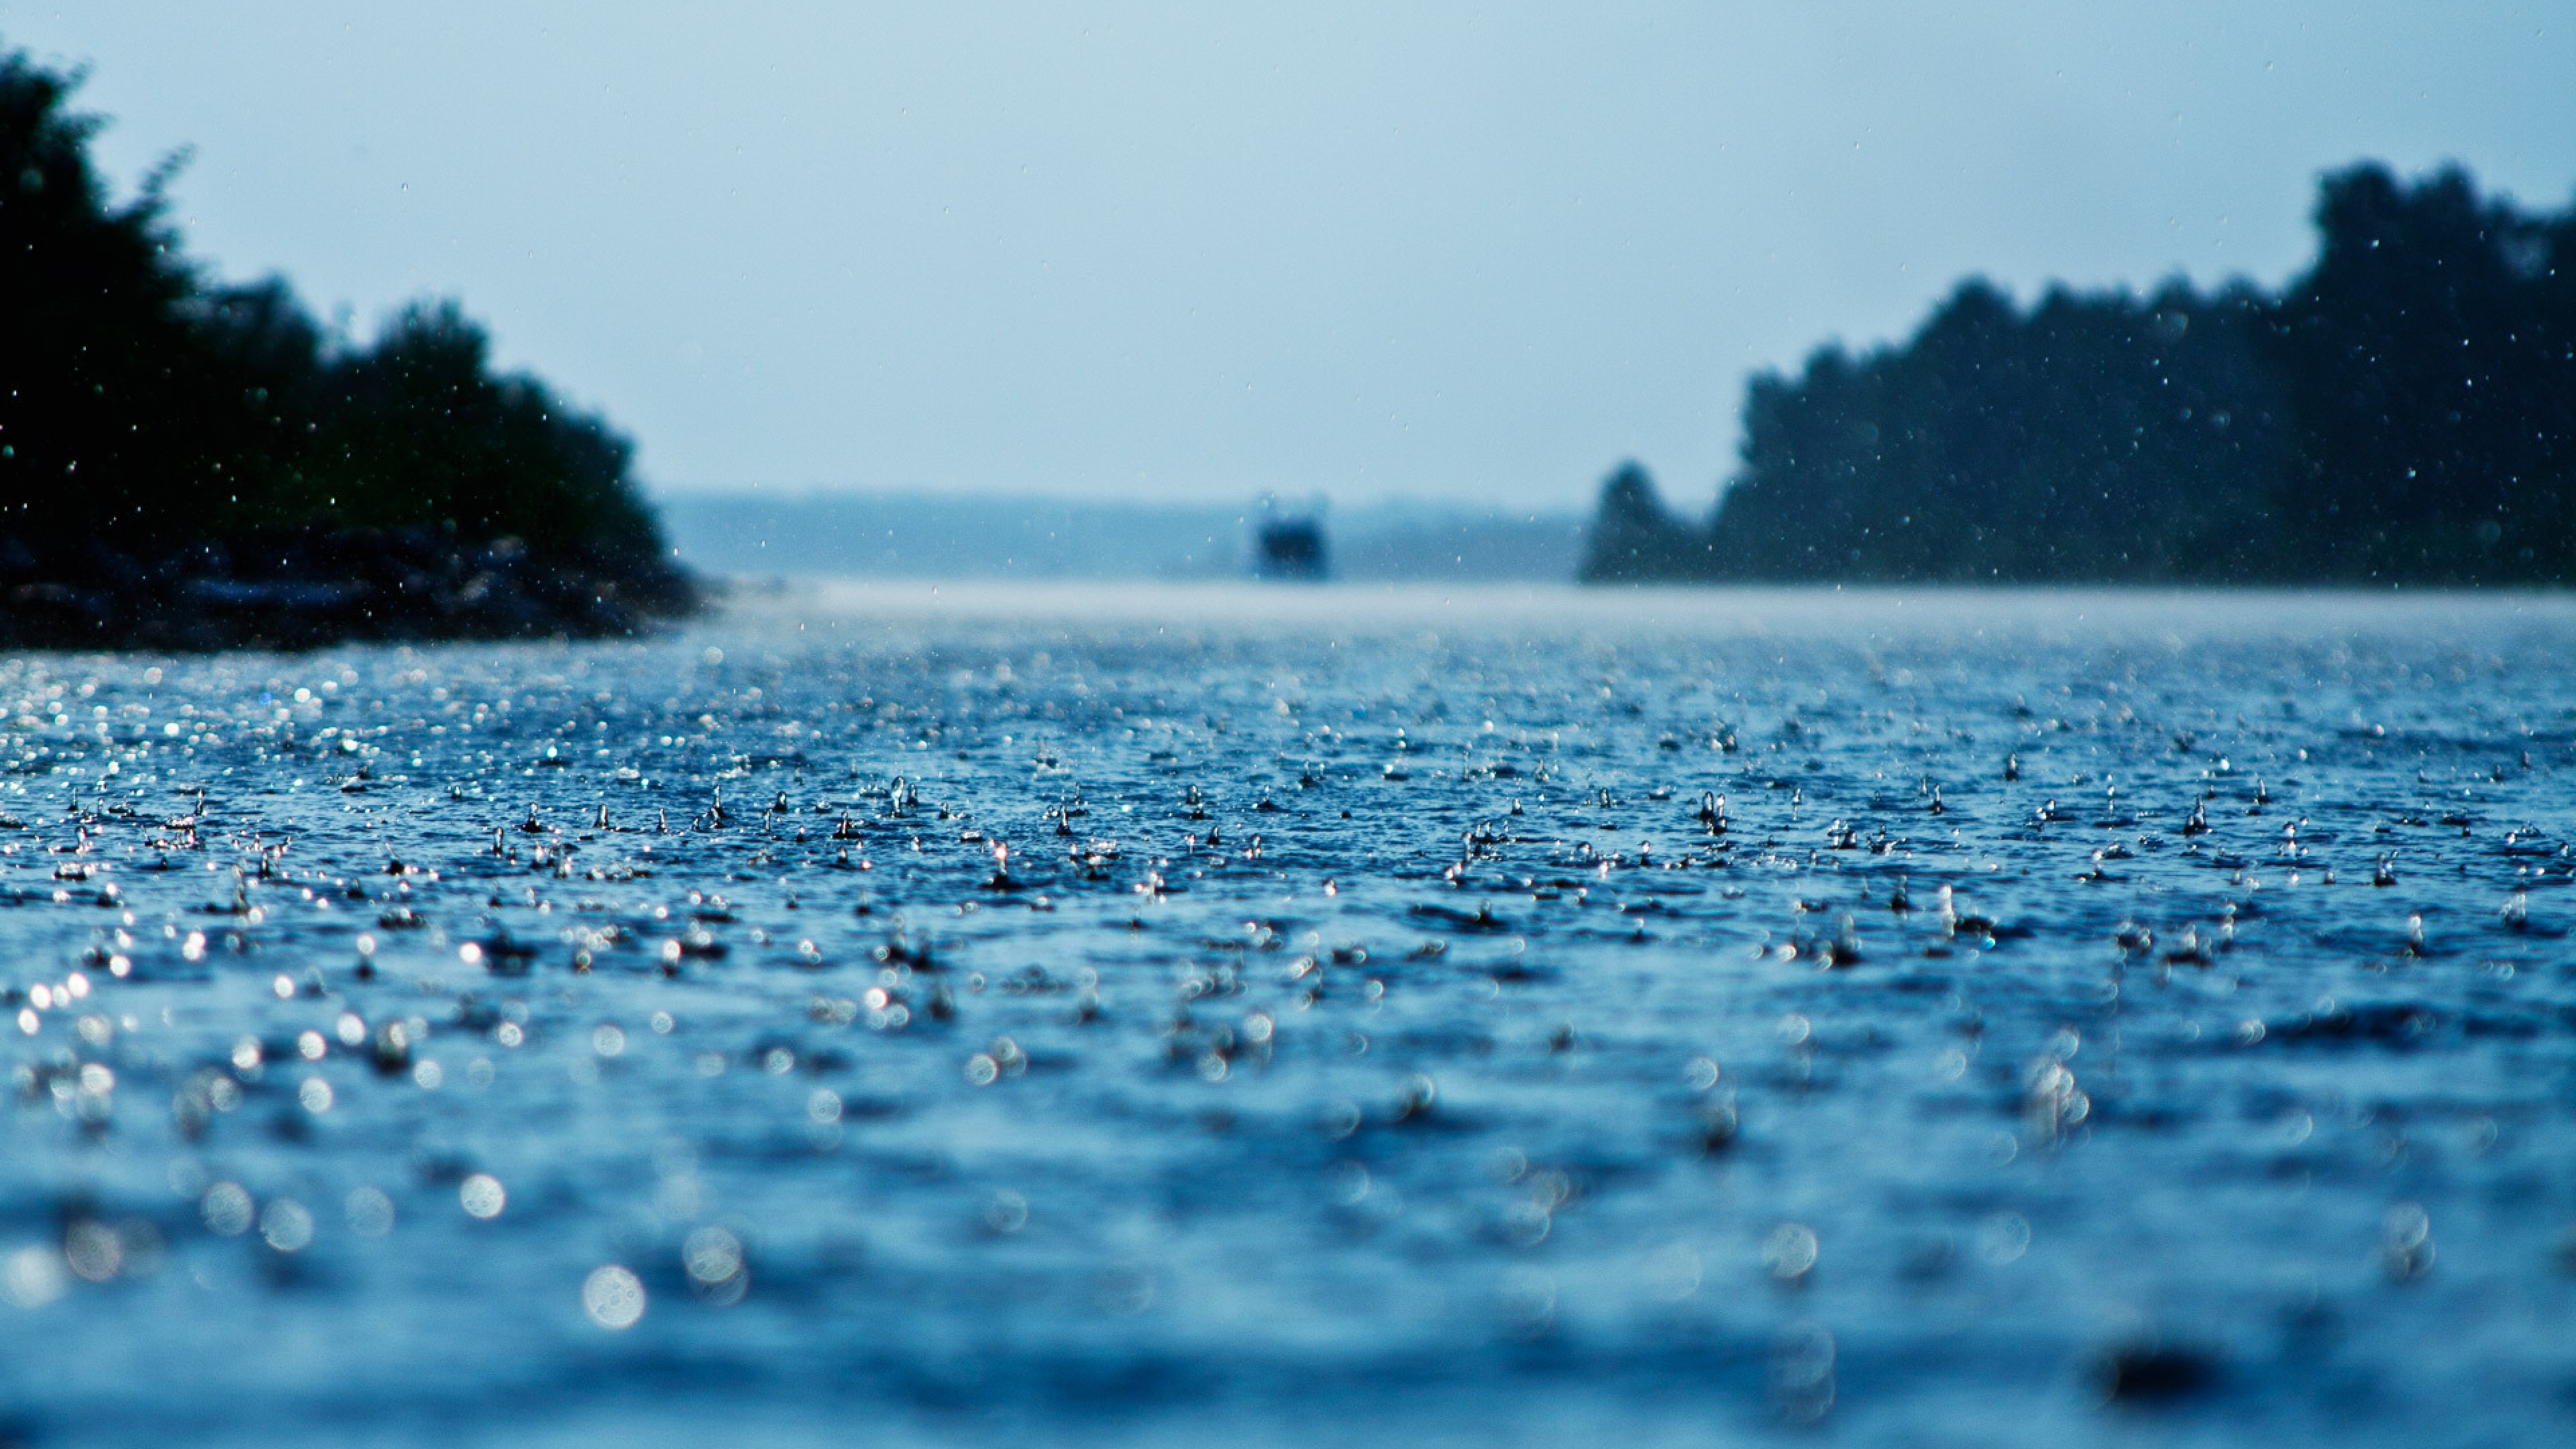 45 4k Rain Wallpaper On Wallpapersafari